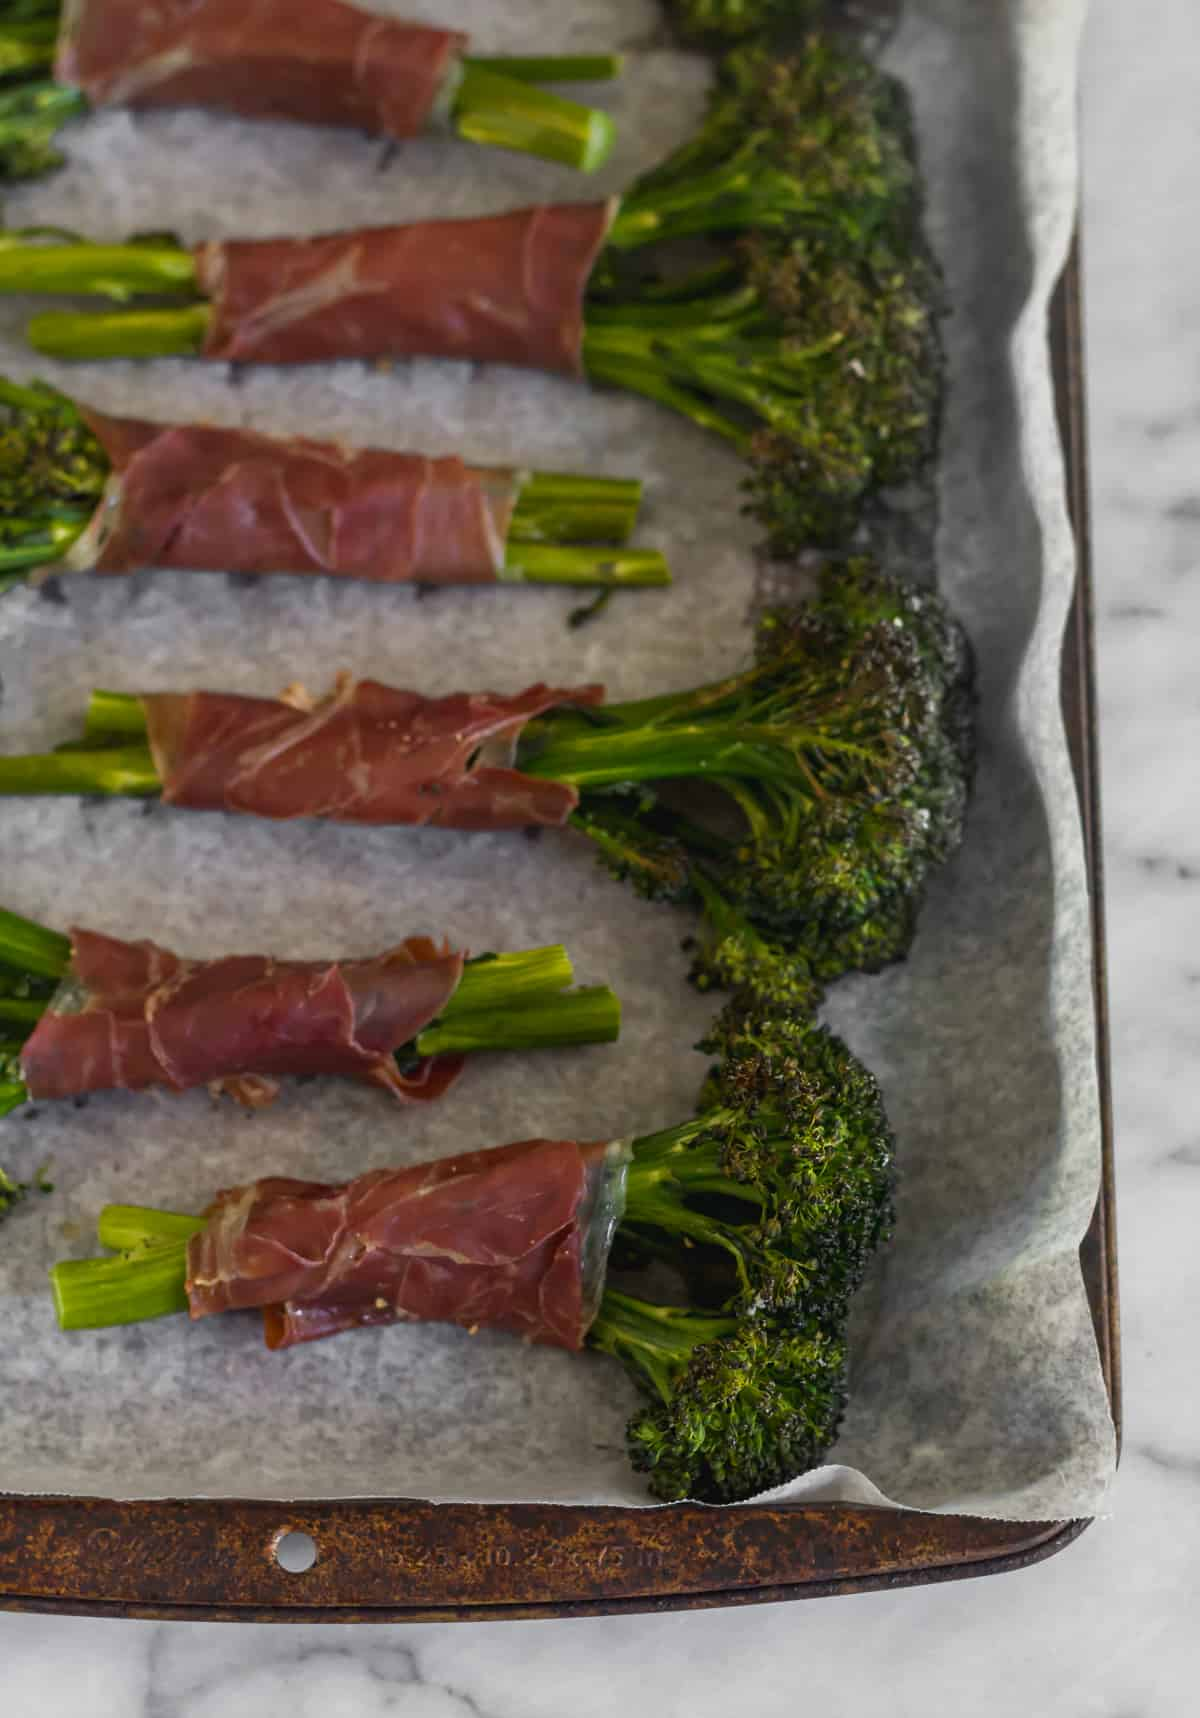 Pan of baked broccolini wrapped in crispy prosciutto after it was roasted in the oven